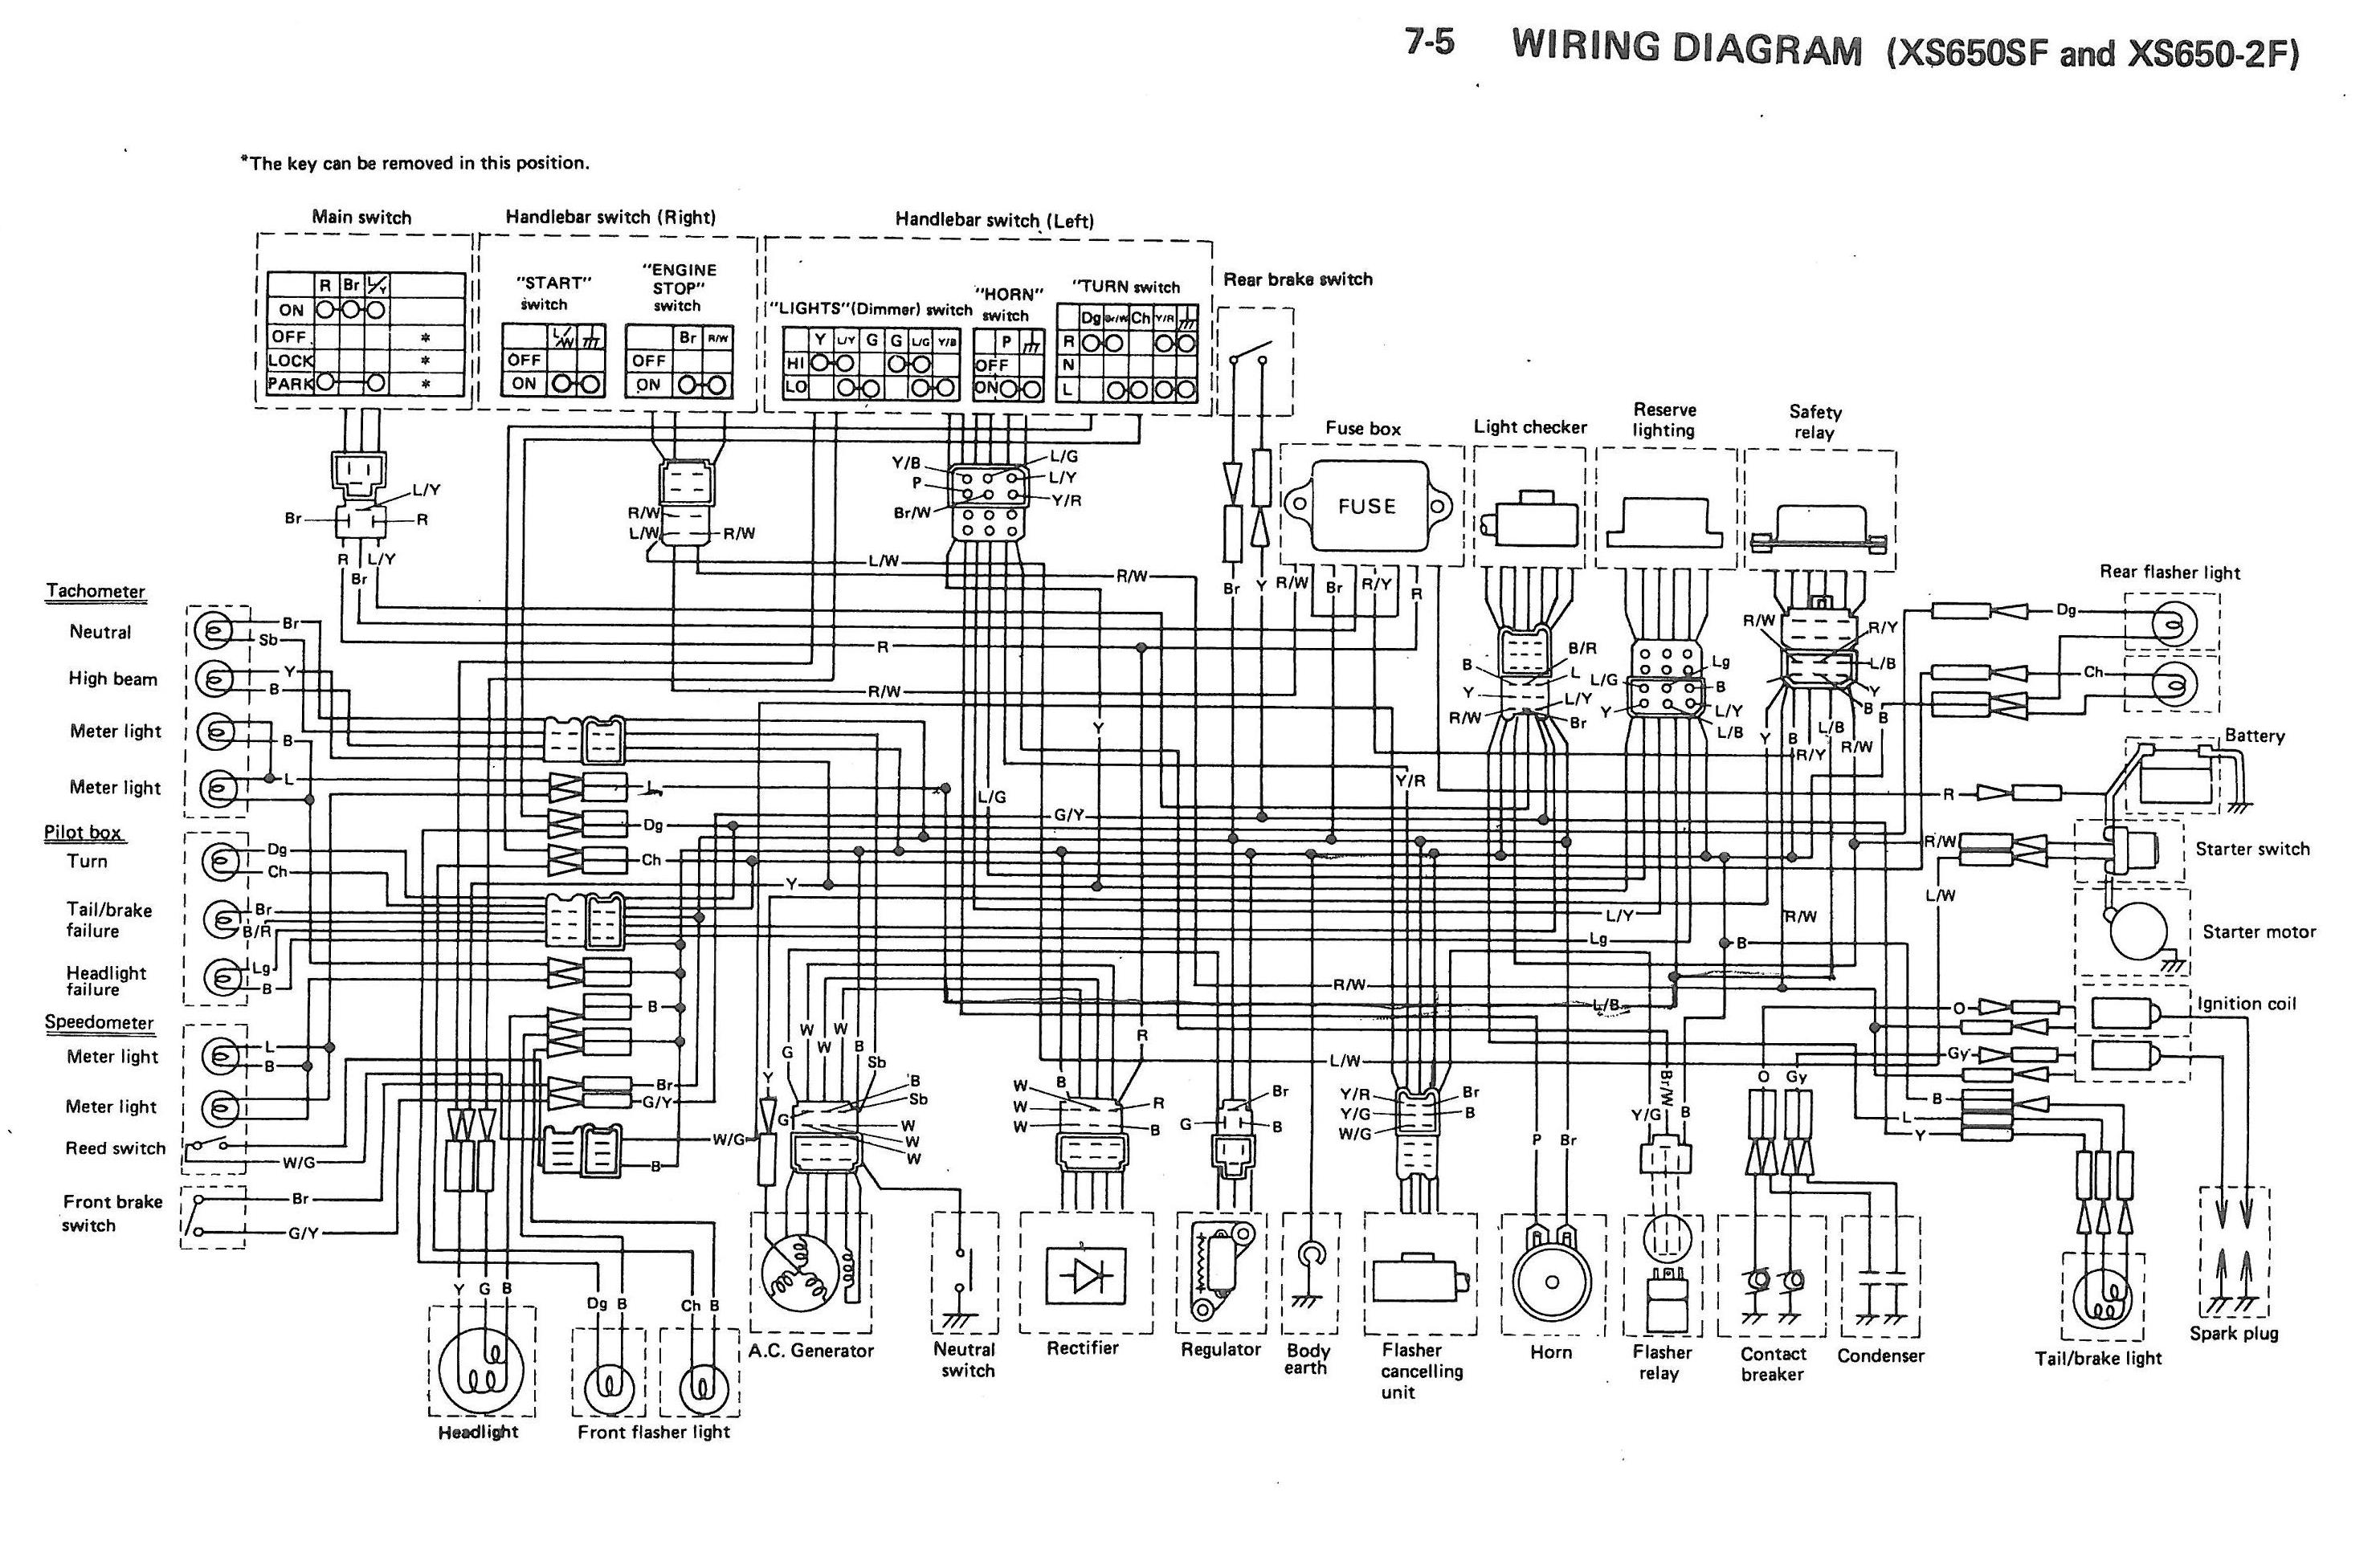 1979 xs 650 wiring diagram electrical diagram schematics rh zavoral genealogy com Arctic Cat Wiring Schematic 1979 Yamaha XS650 Wiring-Diagram